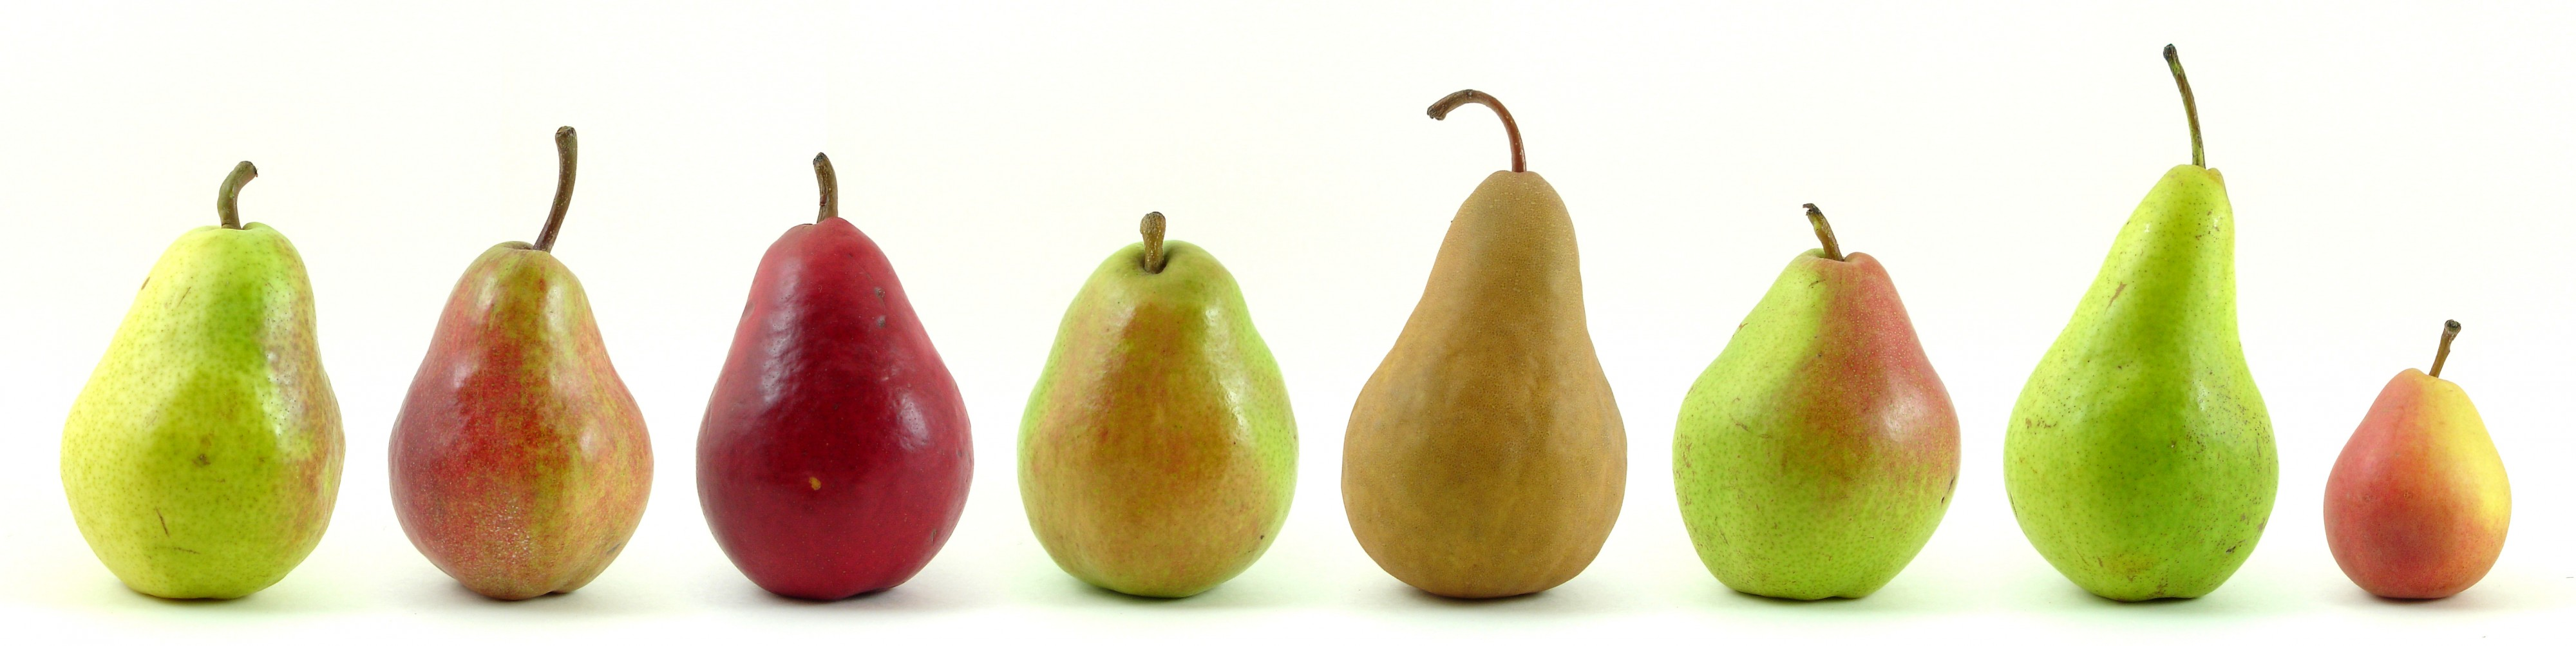 Eight varieties of pears from U.S. markets